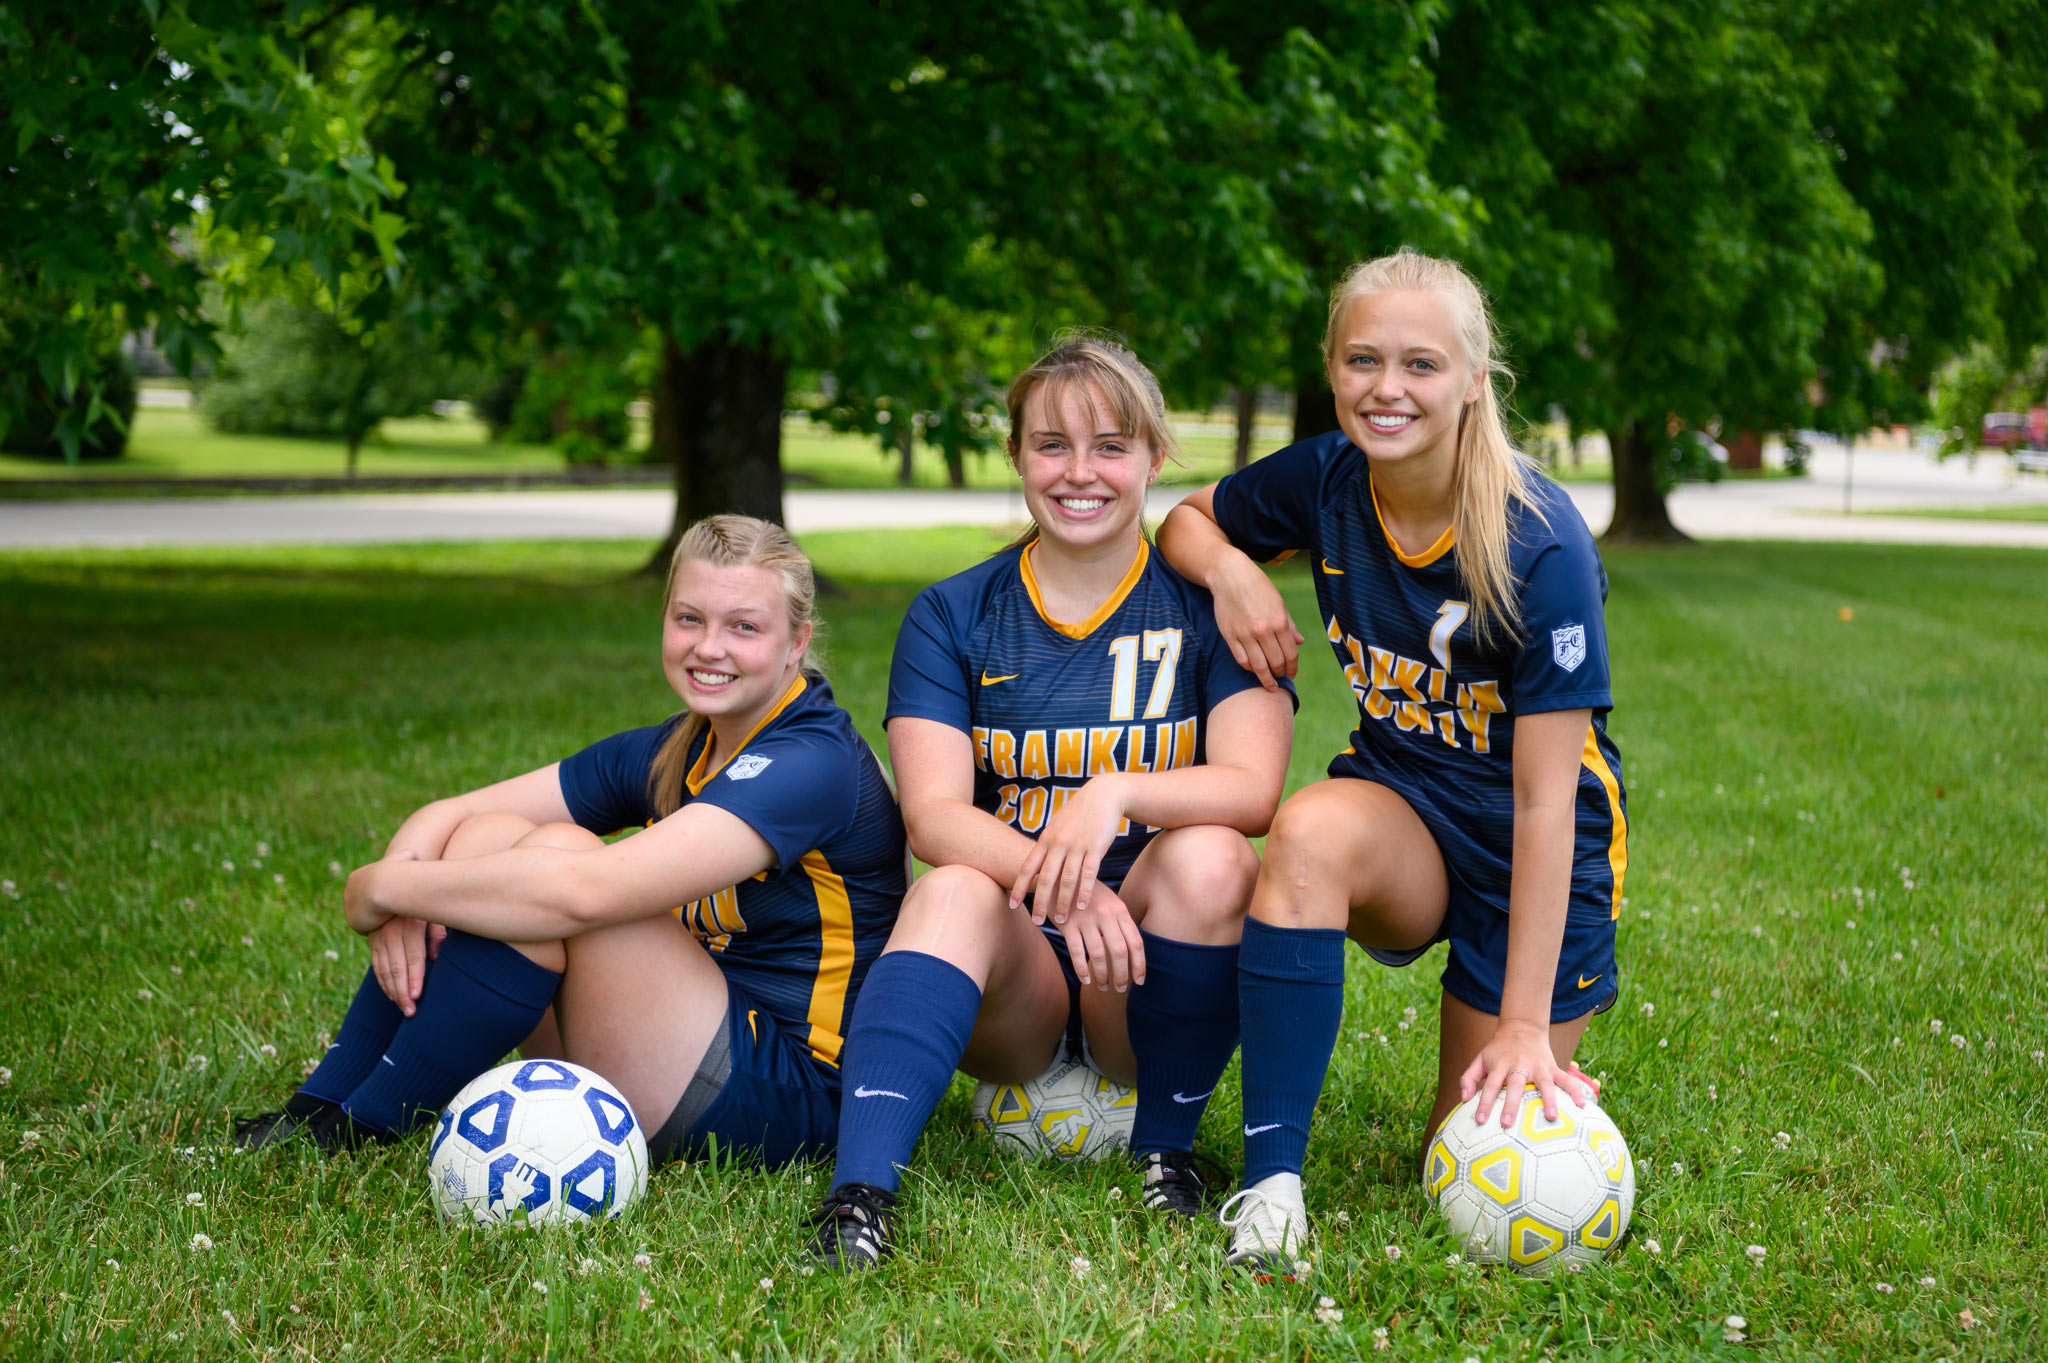 The three girls together crouching down on the field, each with a soccer ball, smiling.